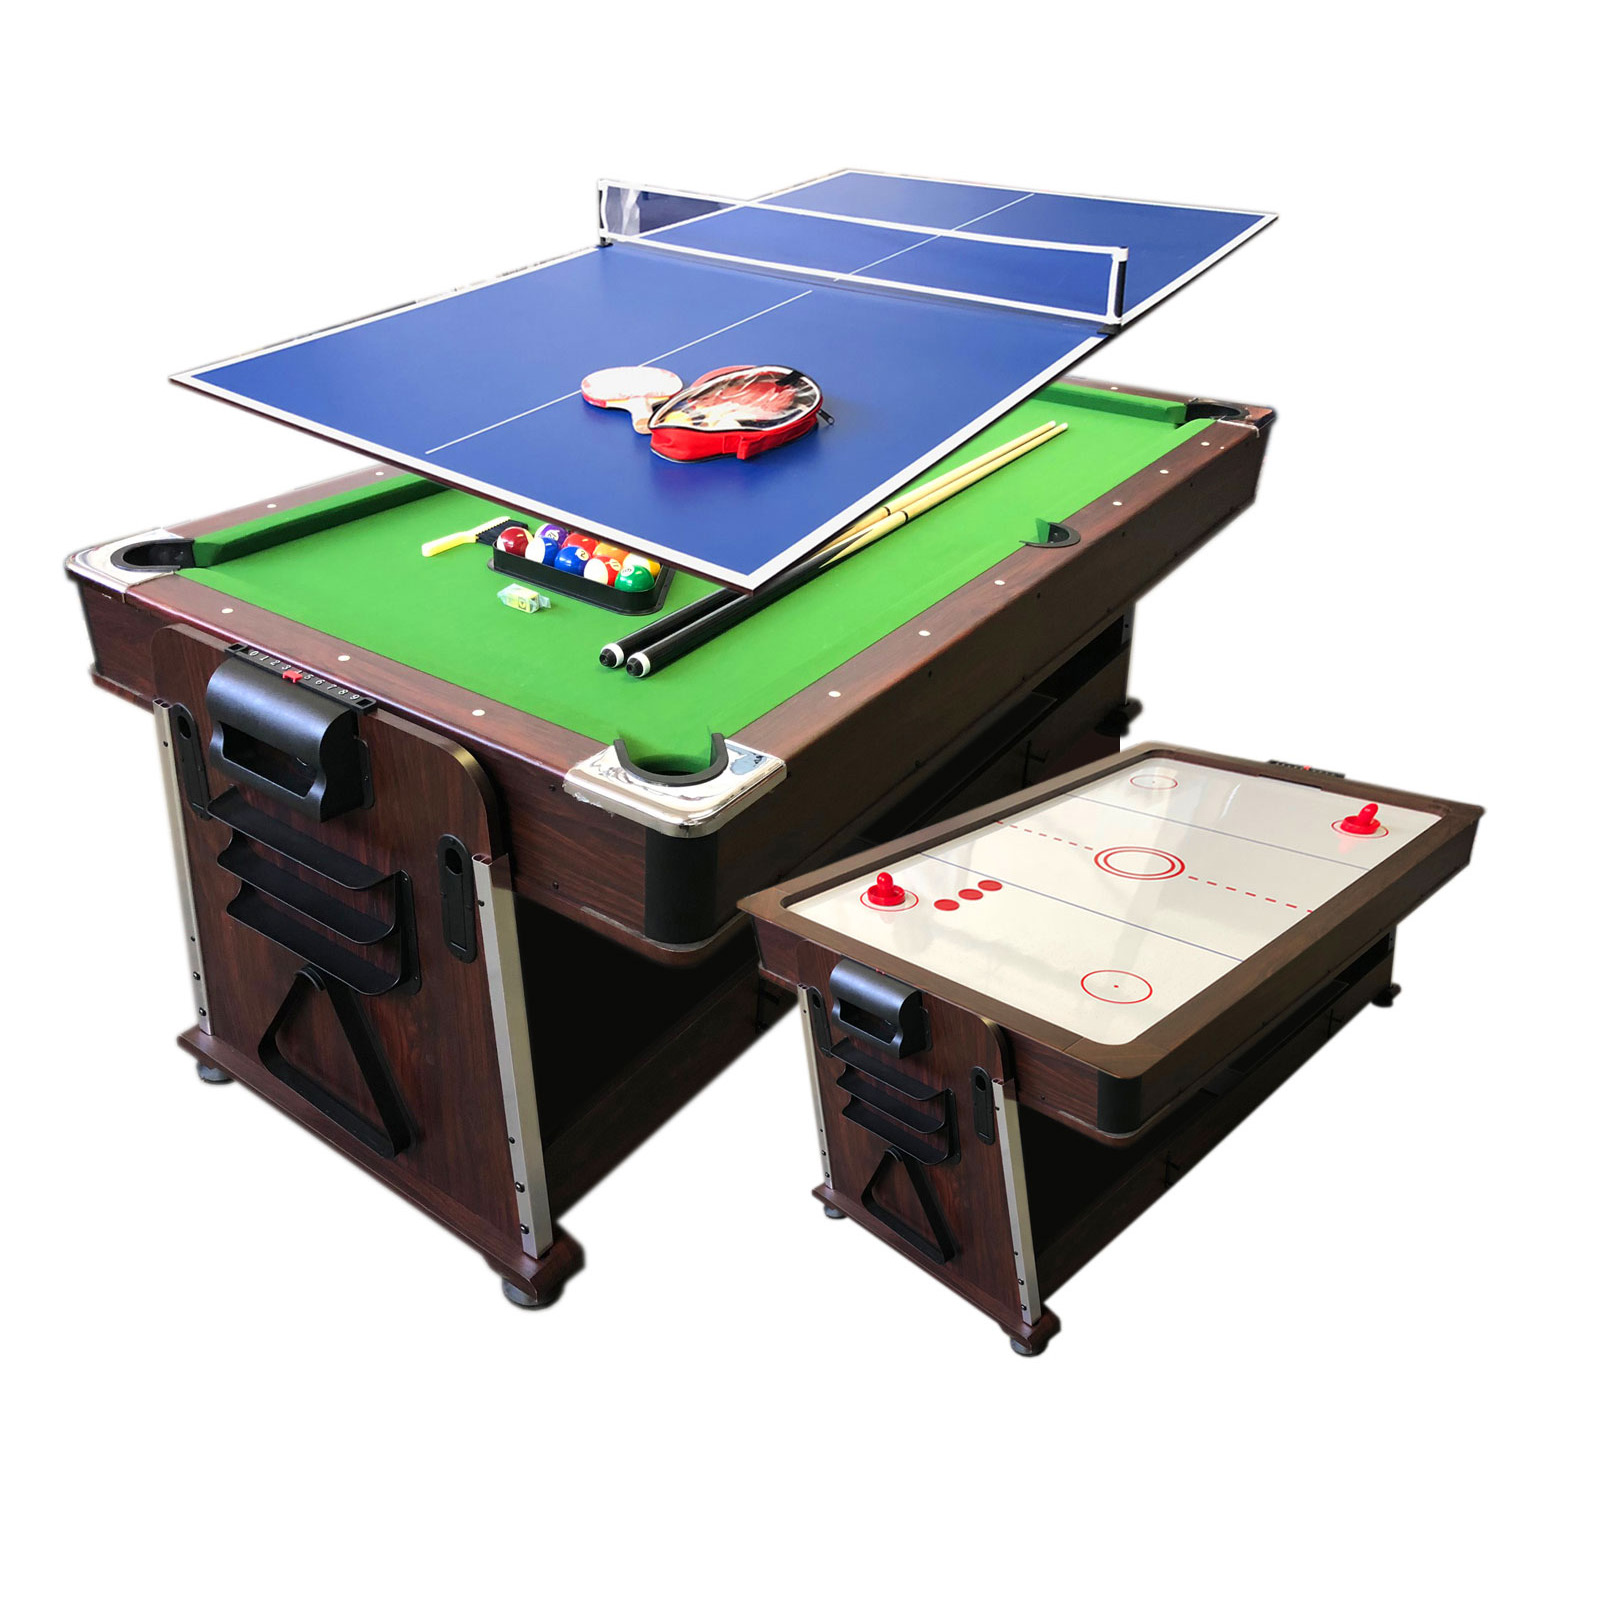 10 FT Pool Table + Air Hockey Table + Tennis Table + Dining table – Mattew